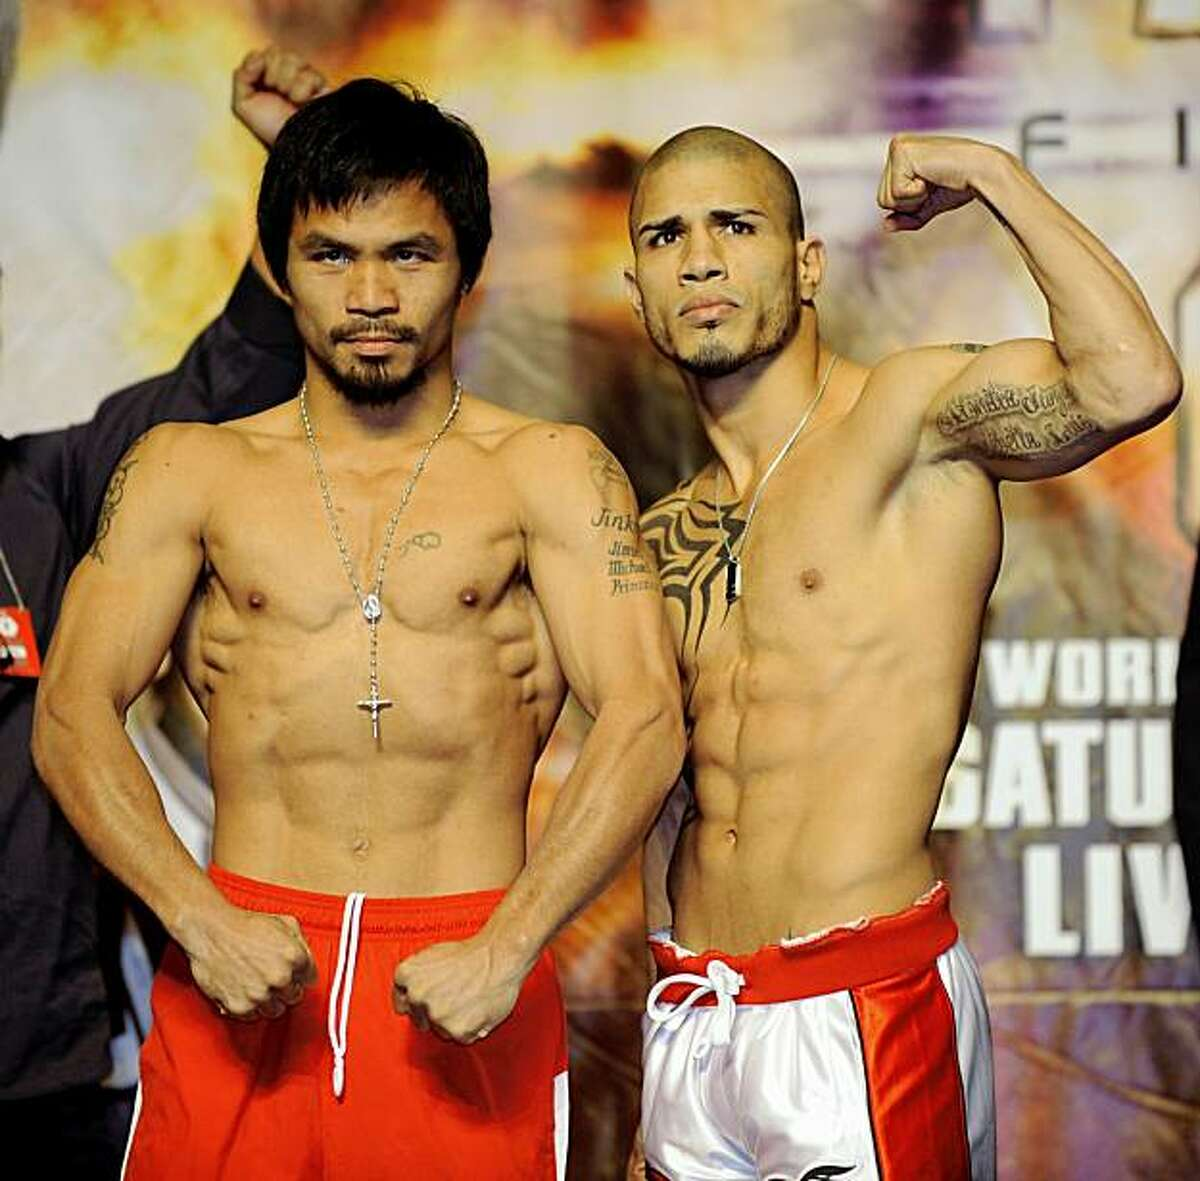 Manny Pacquiao, left, of the Philippines, and Miguel Cotto, of Puerto Rico, pose during the weigh-in for their WBO boxing welterweight title fight Friday, Nov. 13, 2009 in Las Vegas. (AP Photo/Mark J. Terrill)